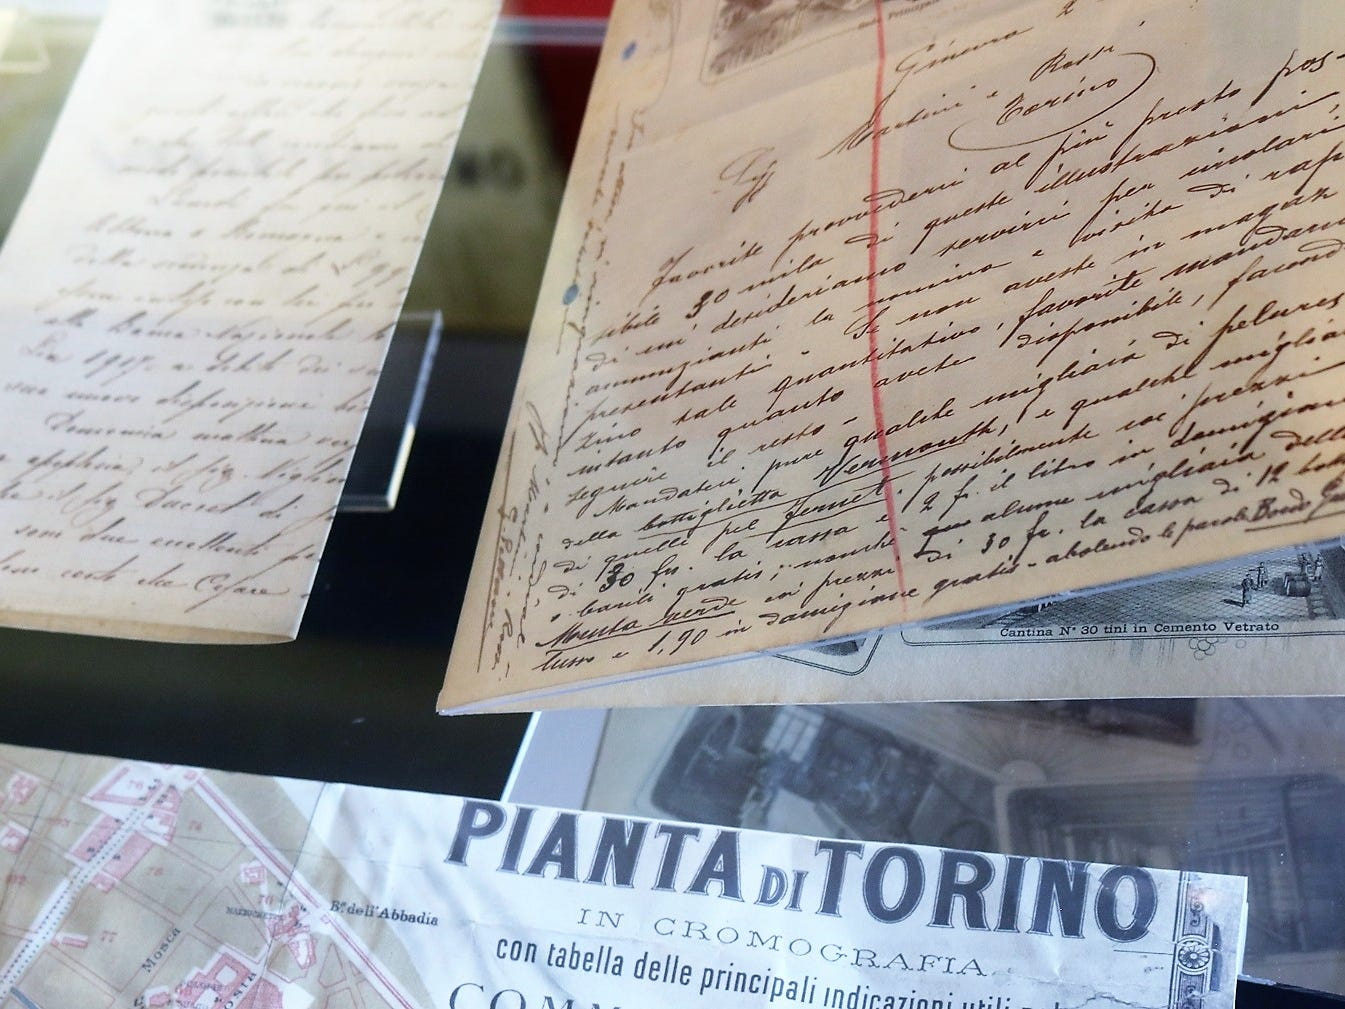 The gallery at Mondo Martini displays a collection of original correspondence, company ledgers and records, and a range of historical documents.